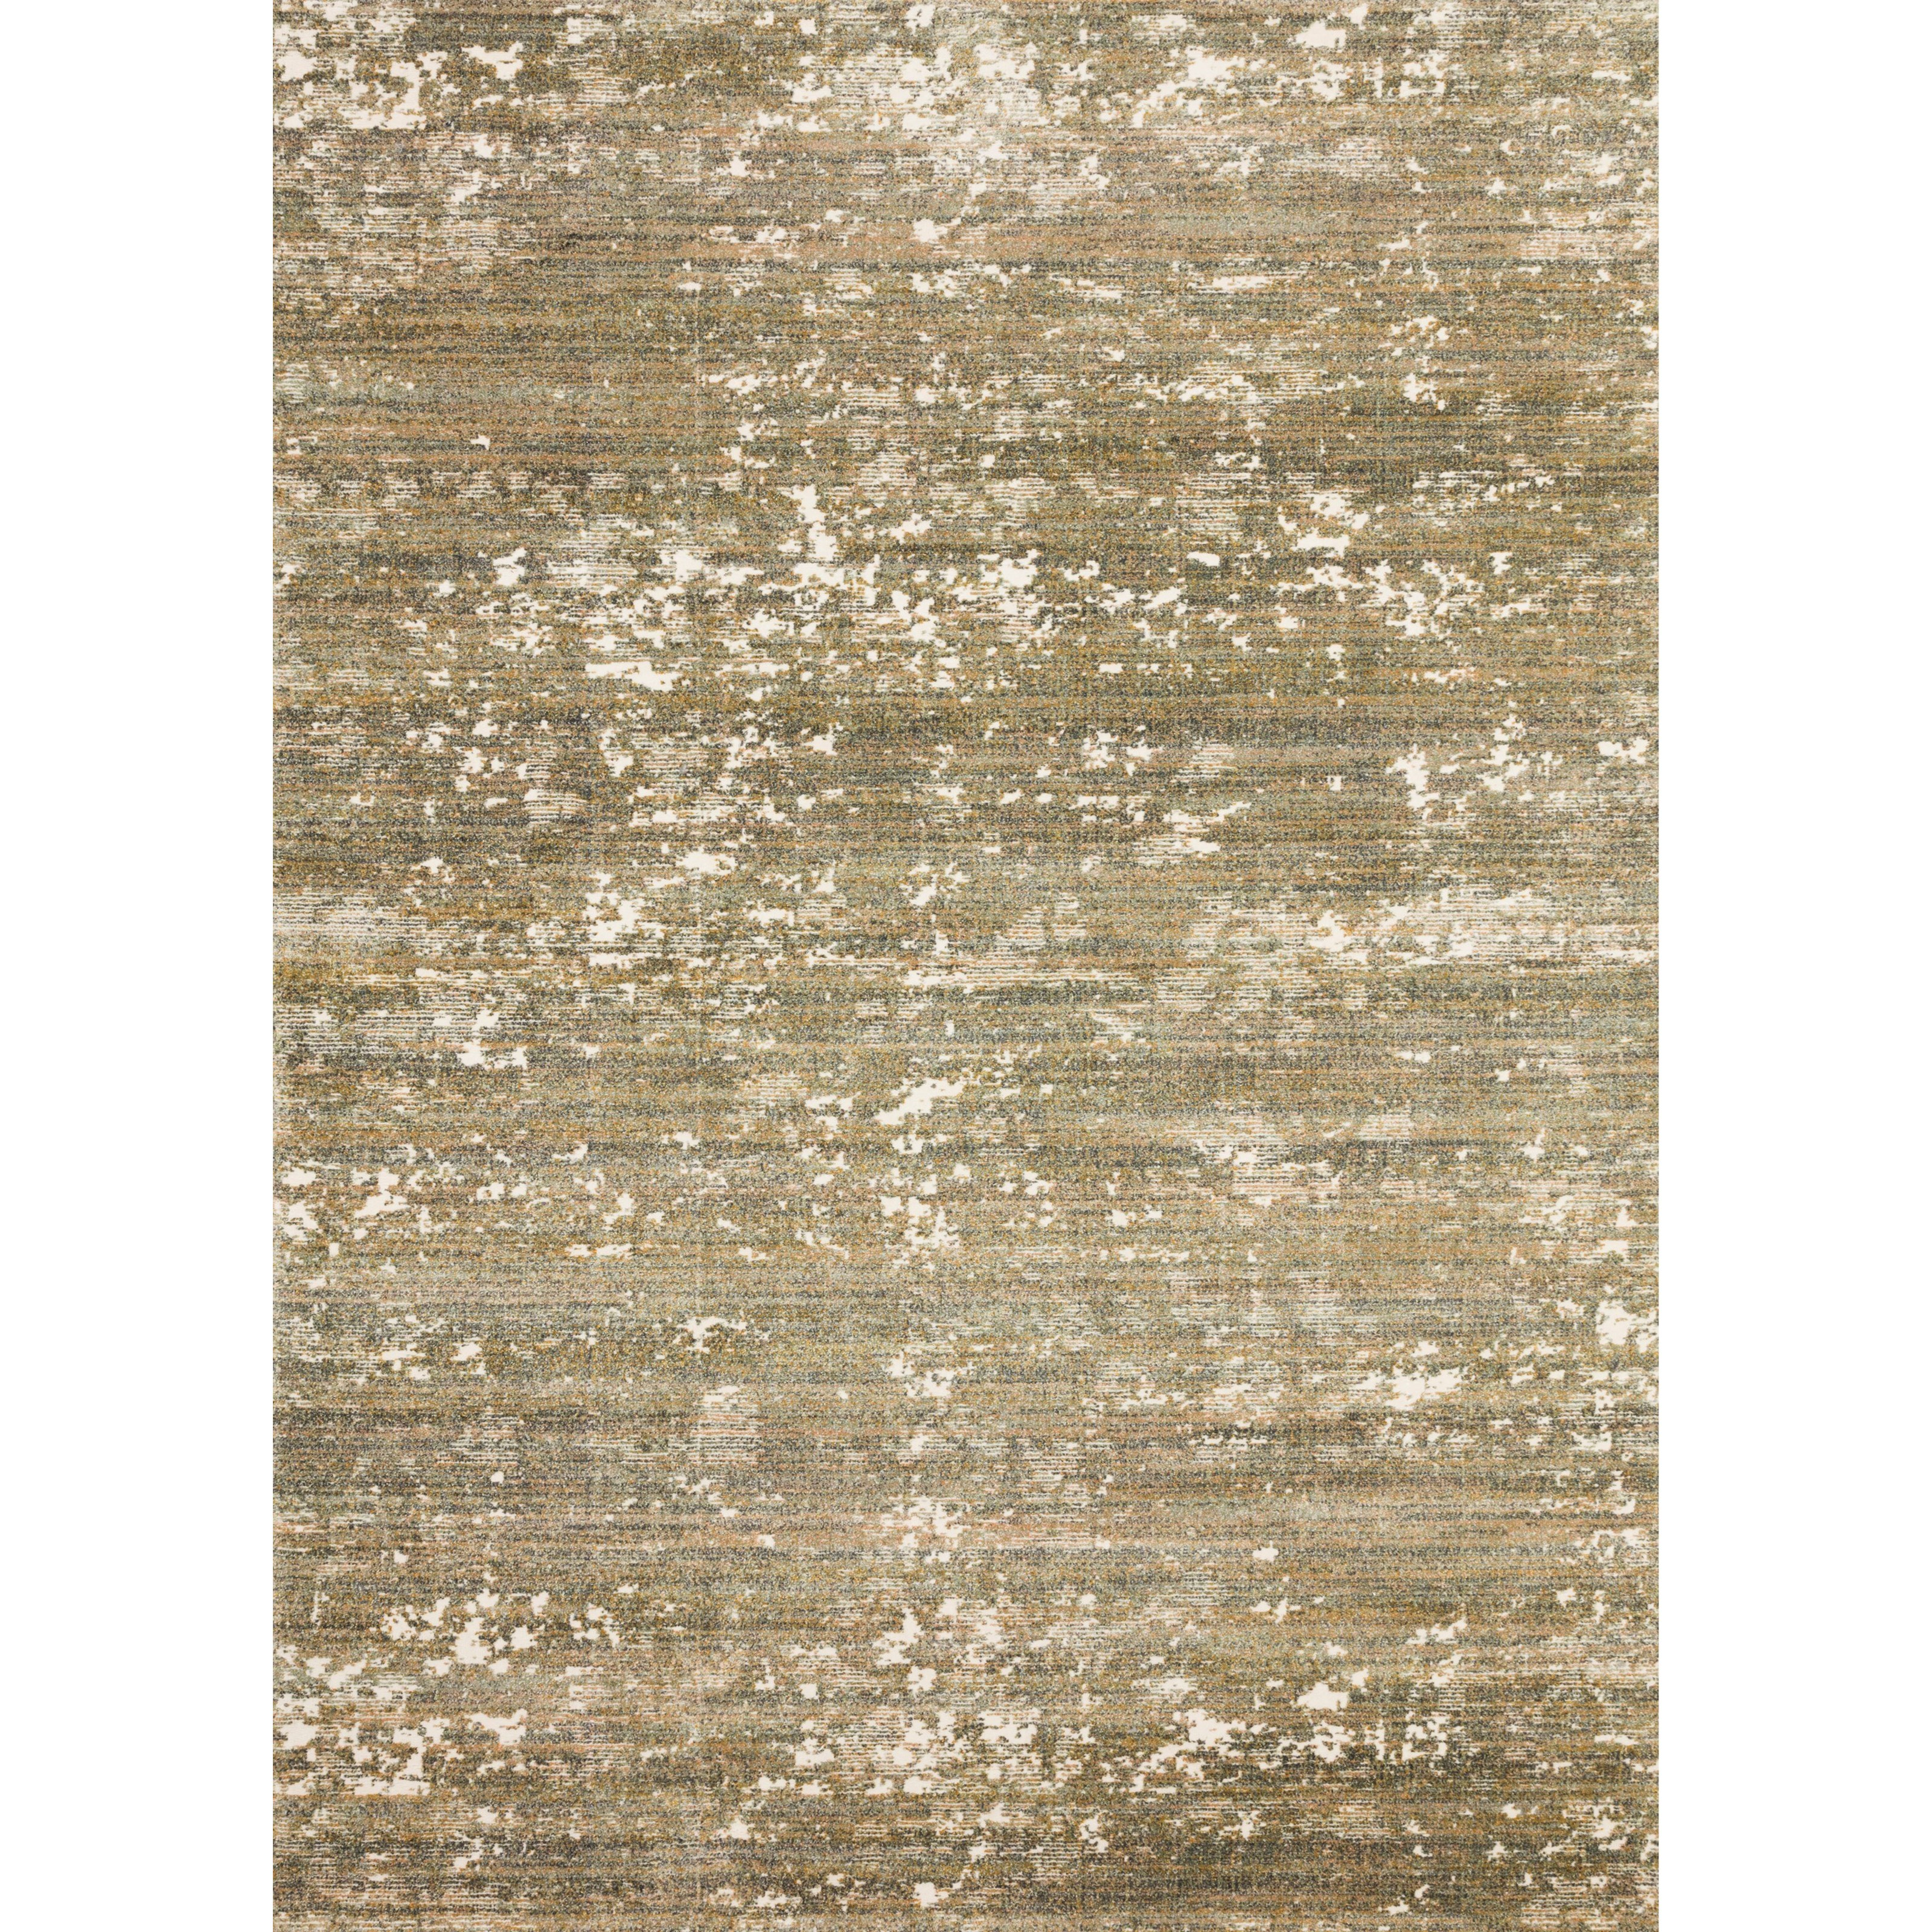 """Augustus 11'6"""" x 15' Moss / Spice Rug by Loloi Rugs at Virginia Furniture Market"""